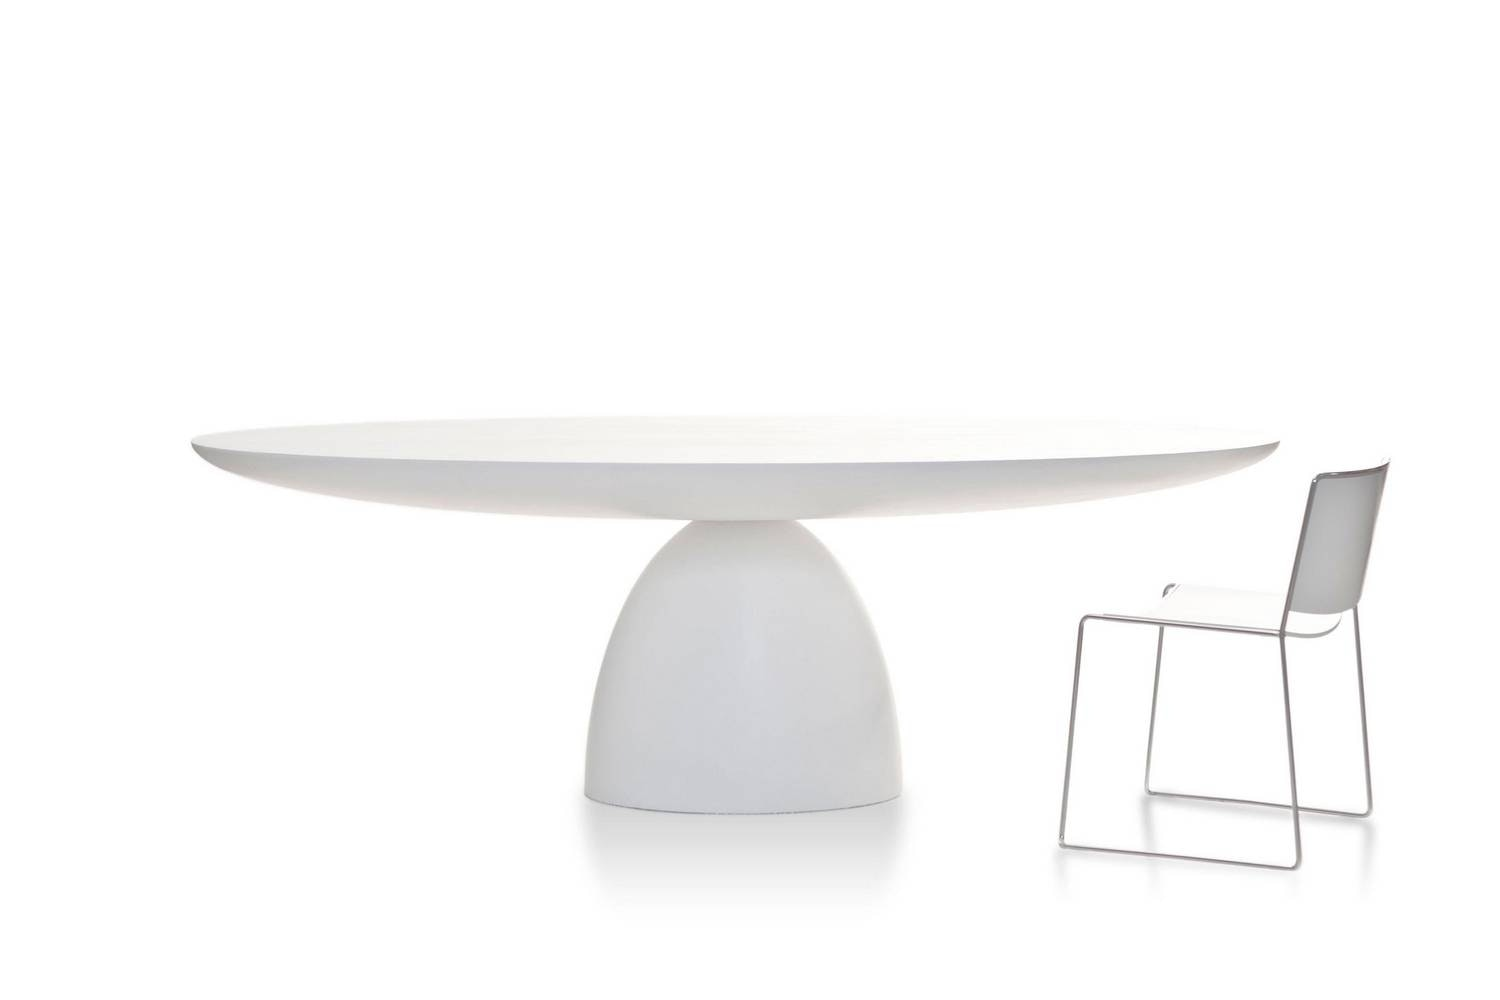 Ellipse Table by Front for Porro